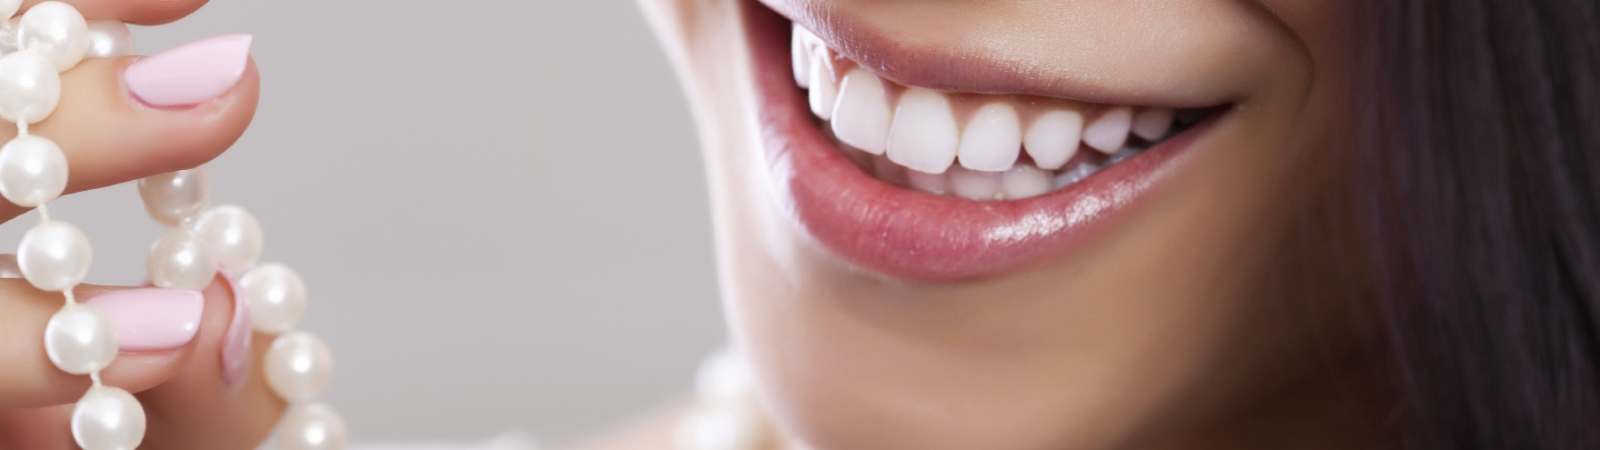 teeth whitening in drummoyne